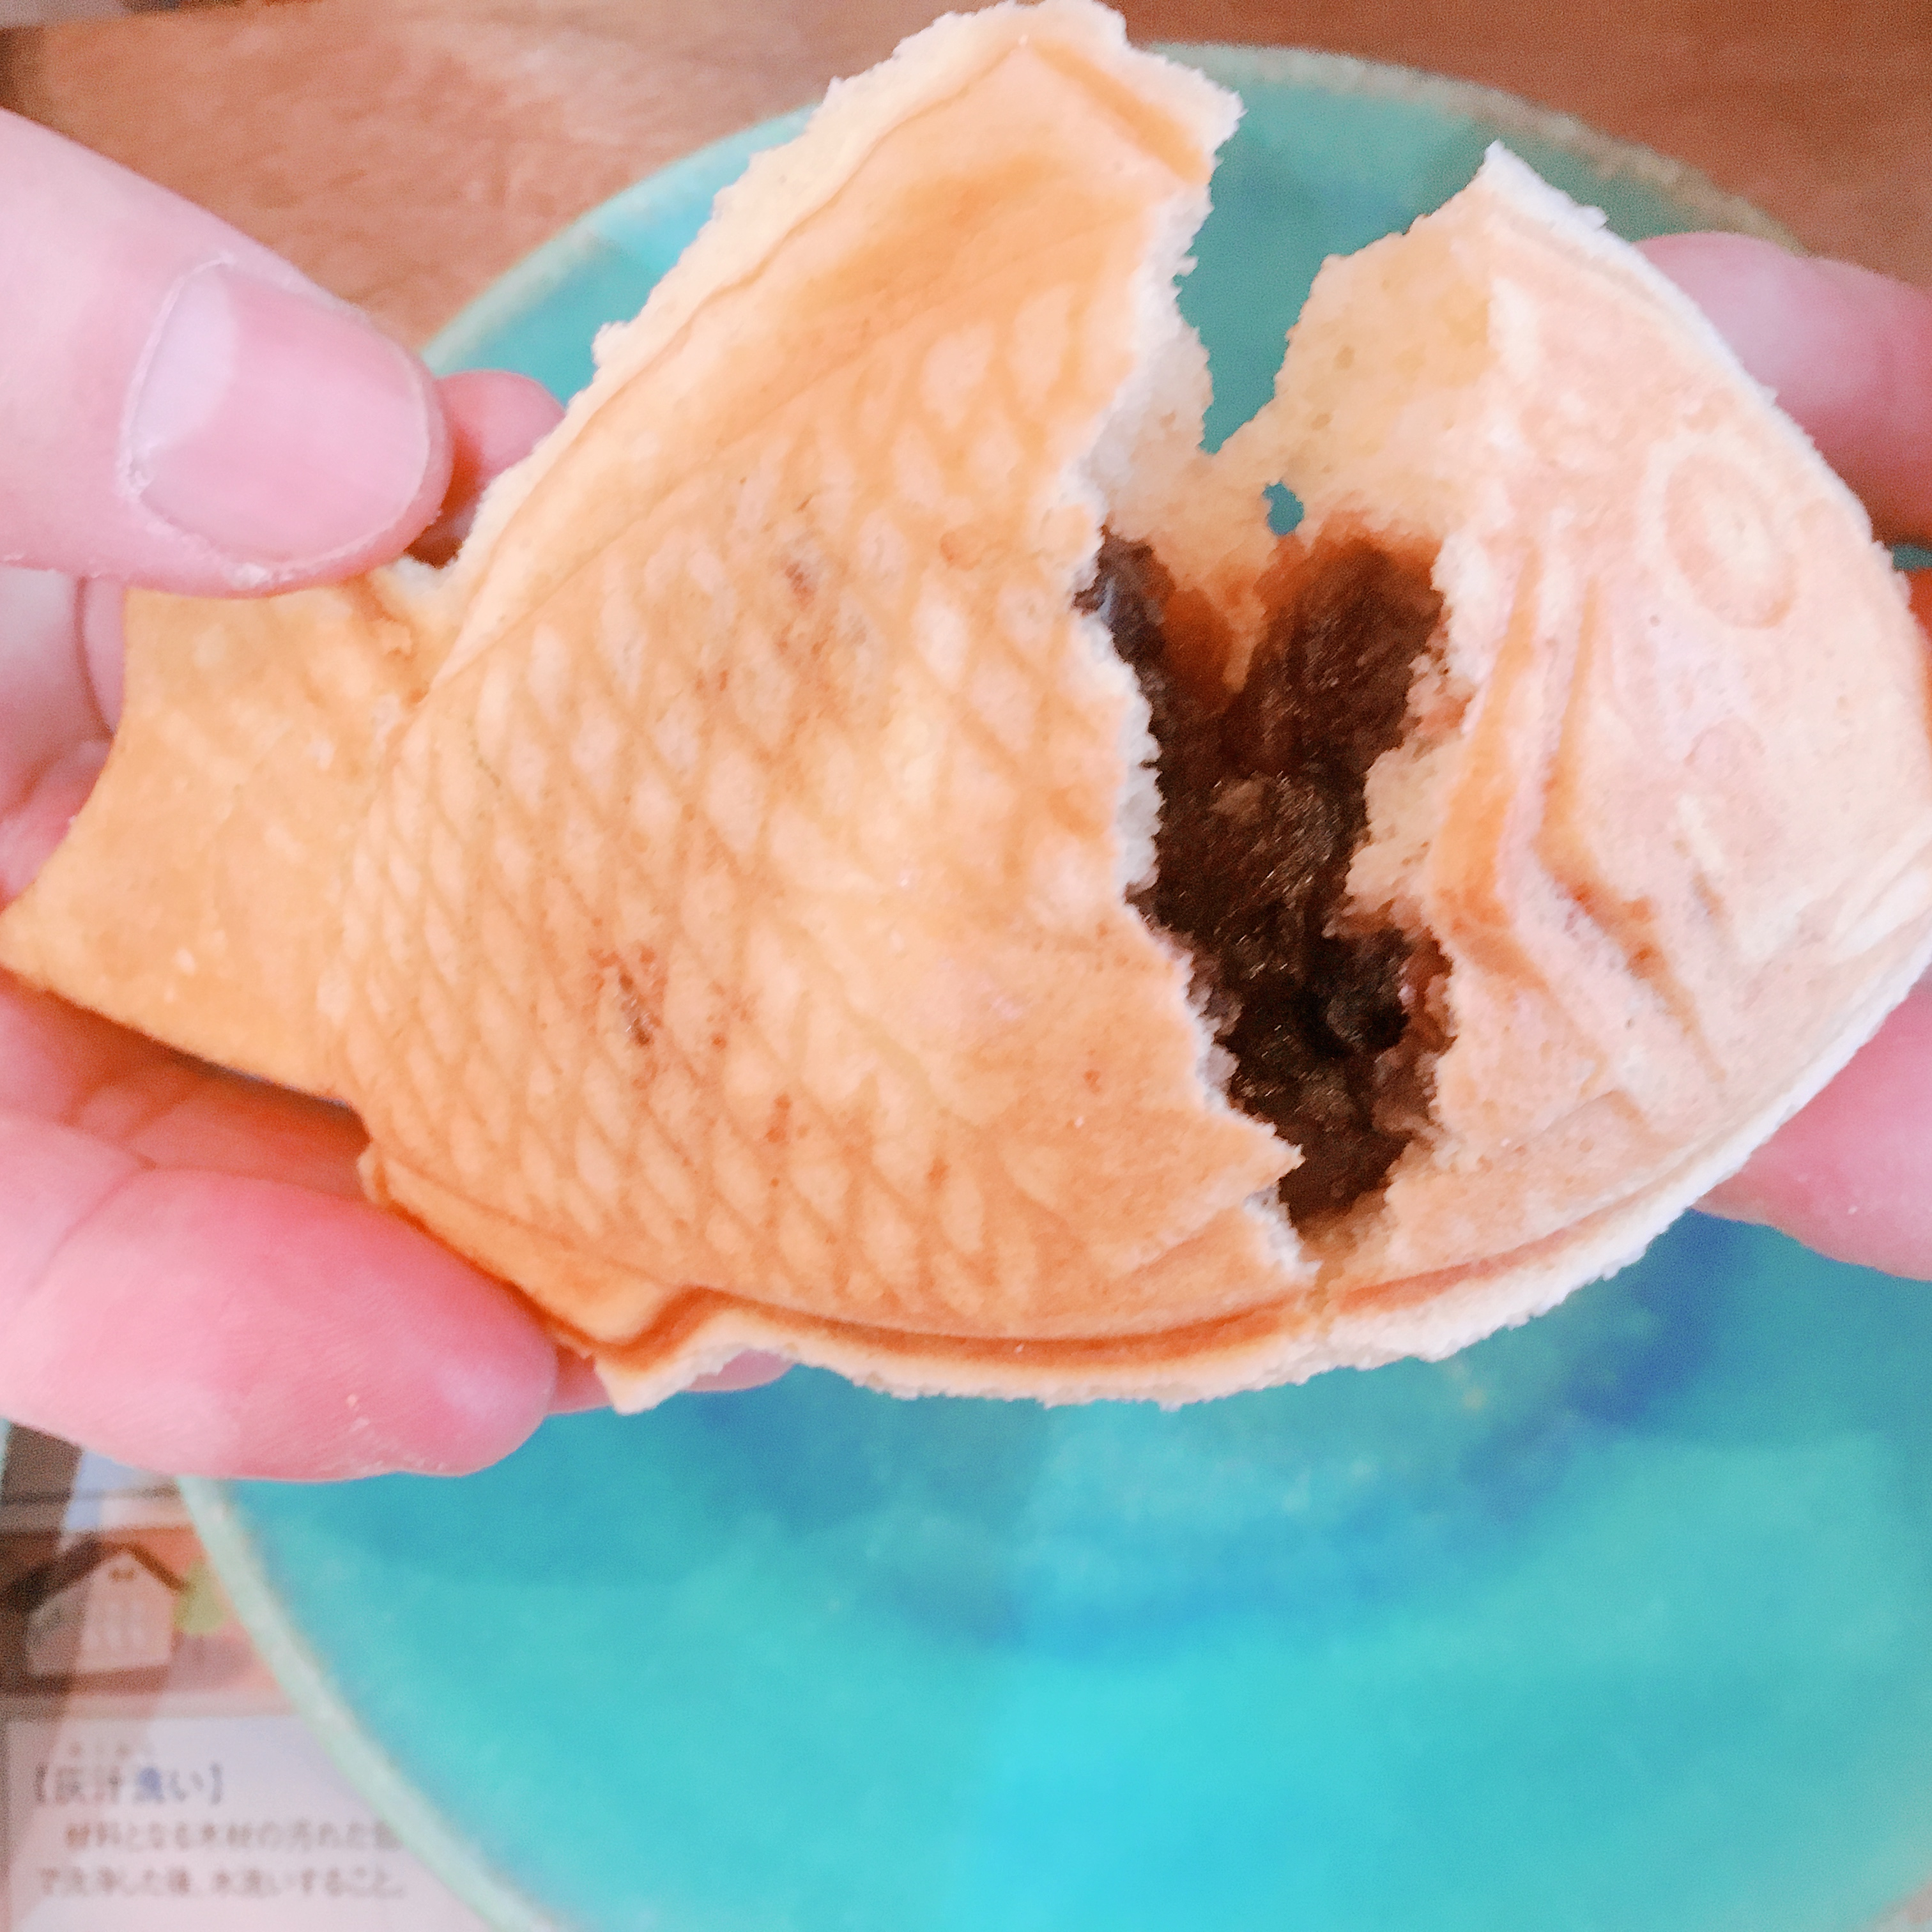 Making Taiyaki & Enjoy it with Matcha Green Tea